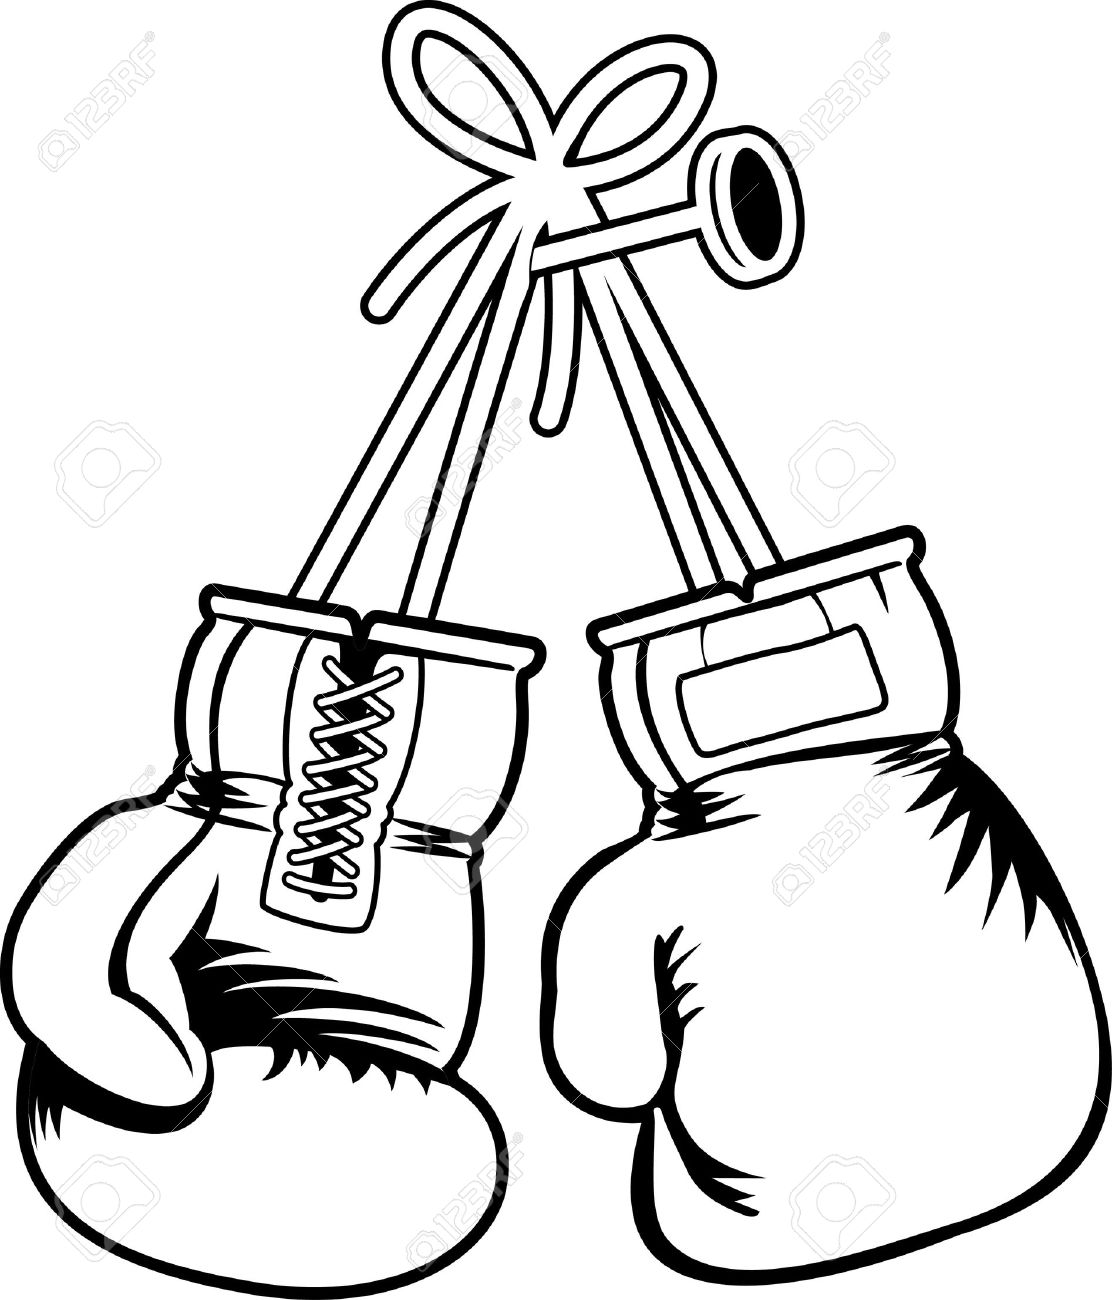 coloring pages of boxing gloves - photo#25